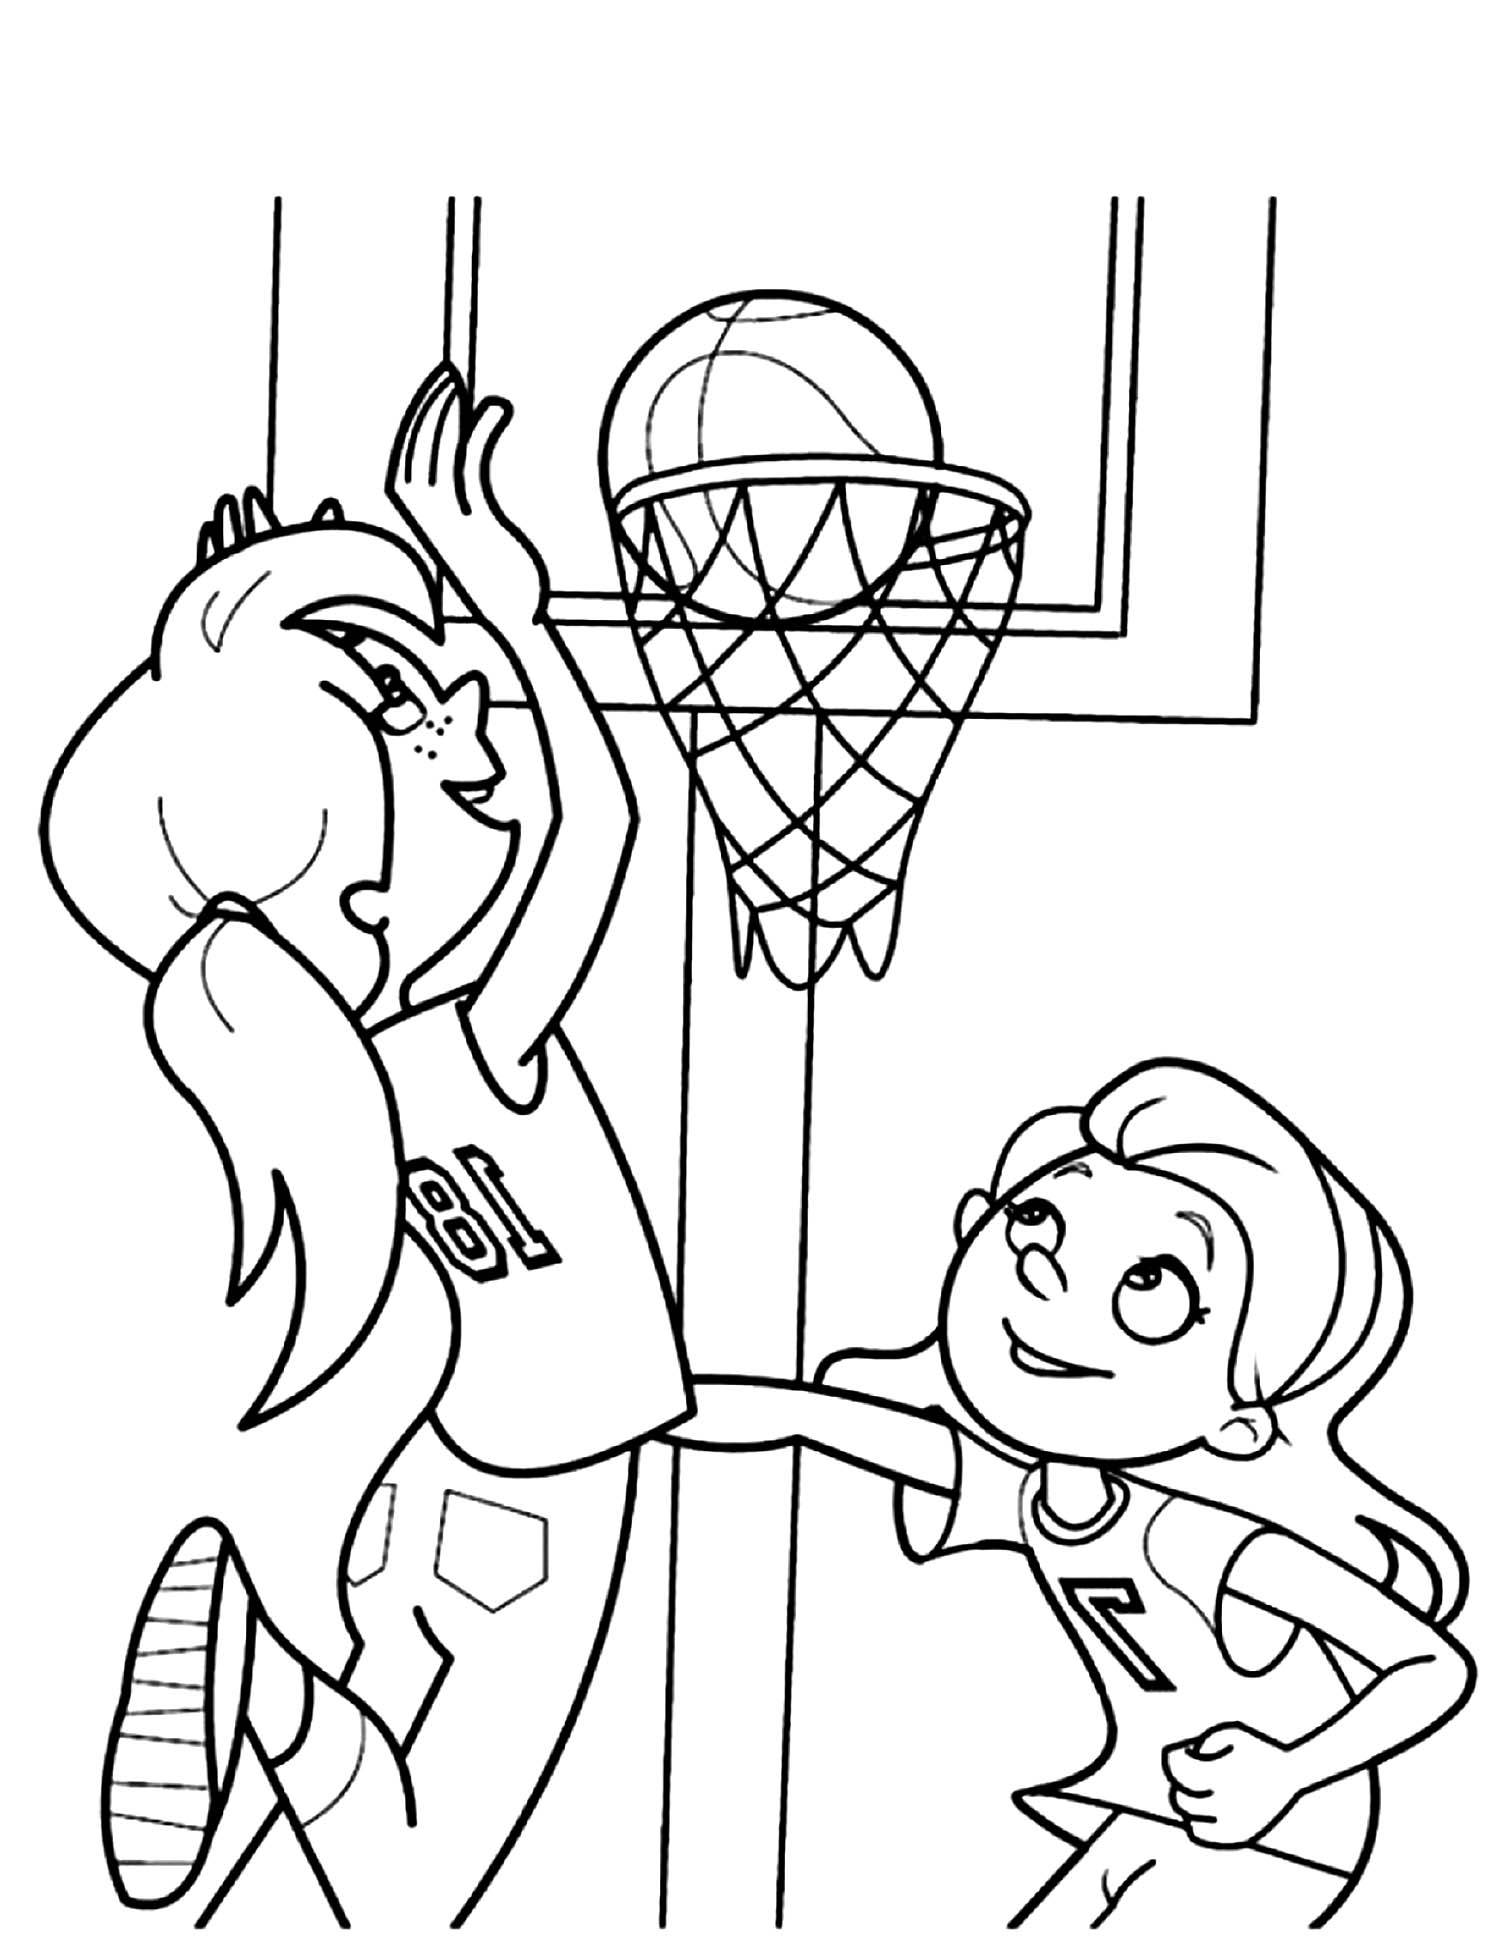 coloring pages of basketball coloring page basketball free drawing board weekly basketball of pages coloring